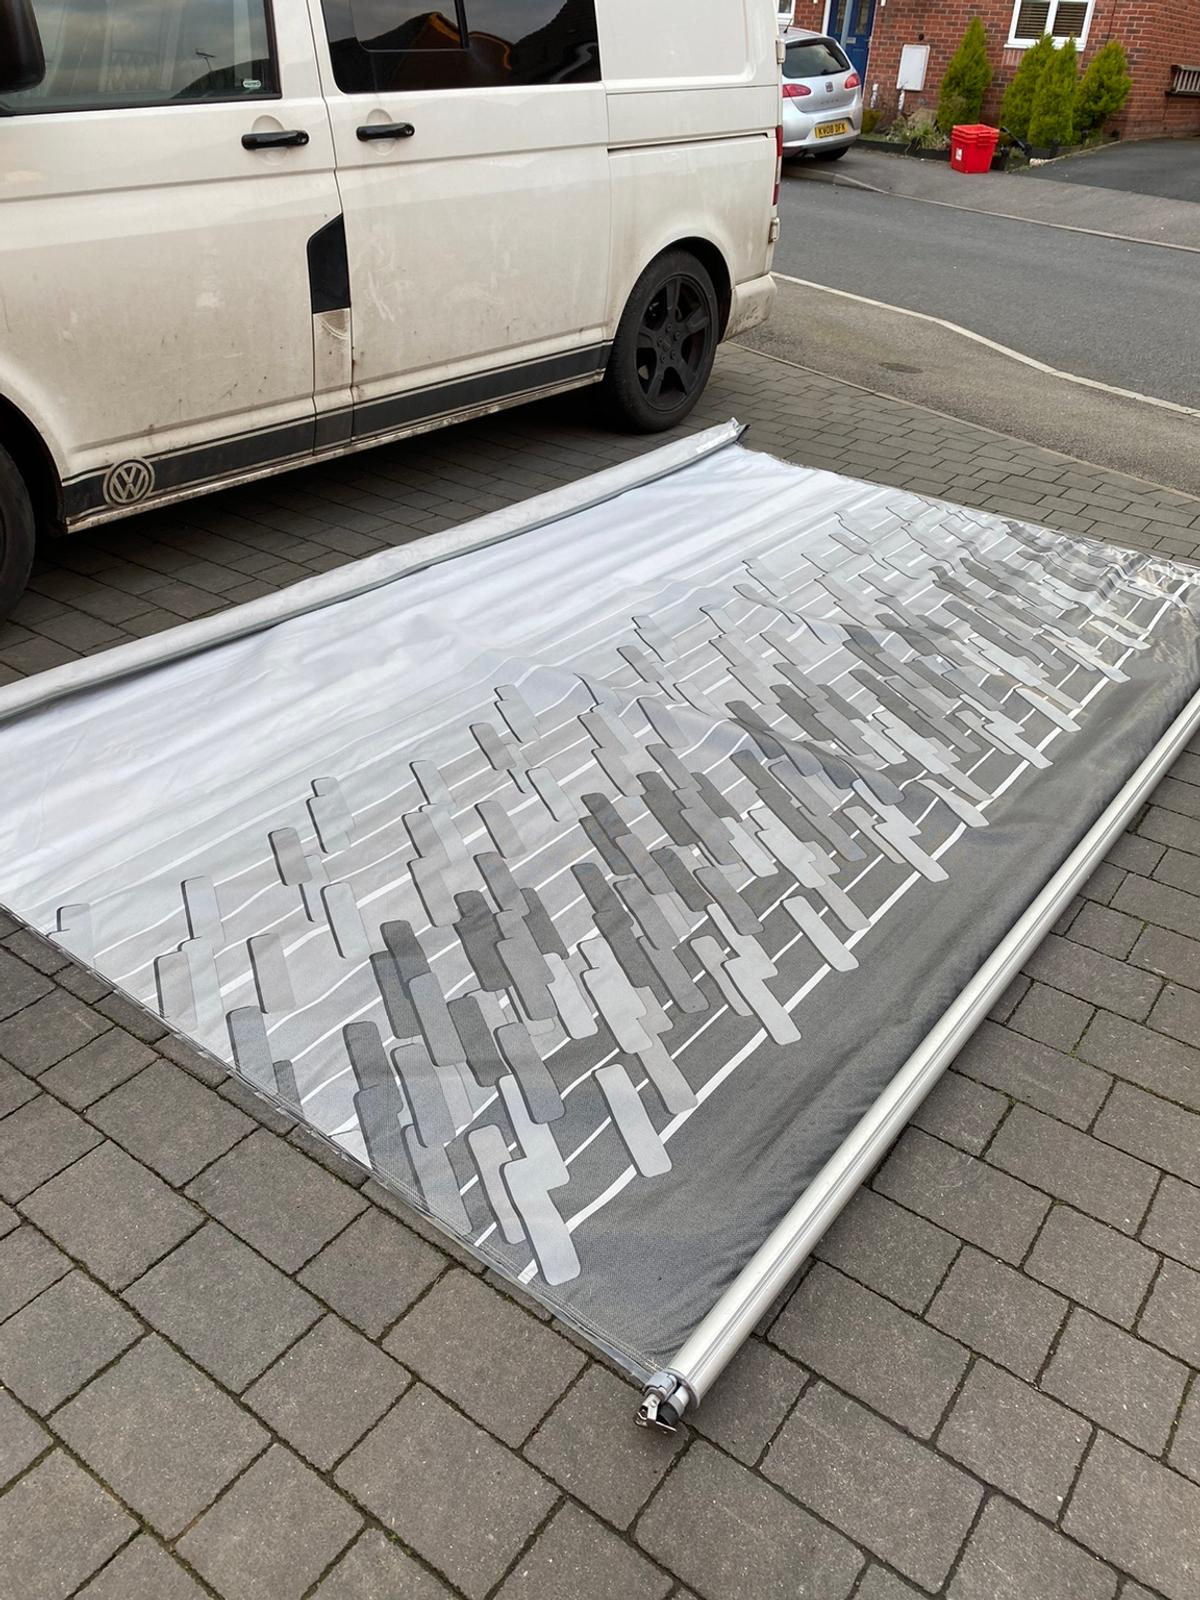 Fiamma roll out awning 3.6 in CV34 Warwick for £80.00 for ...